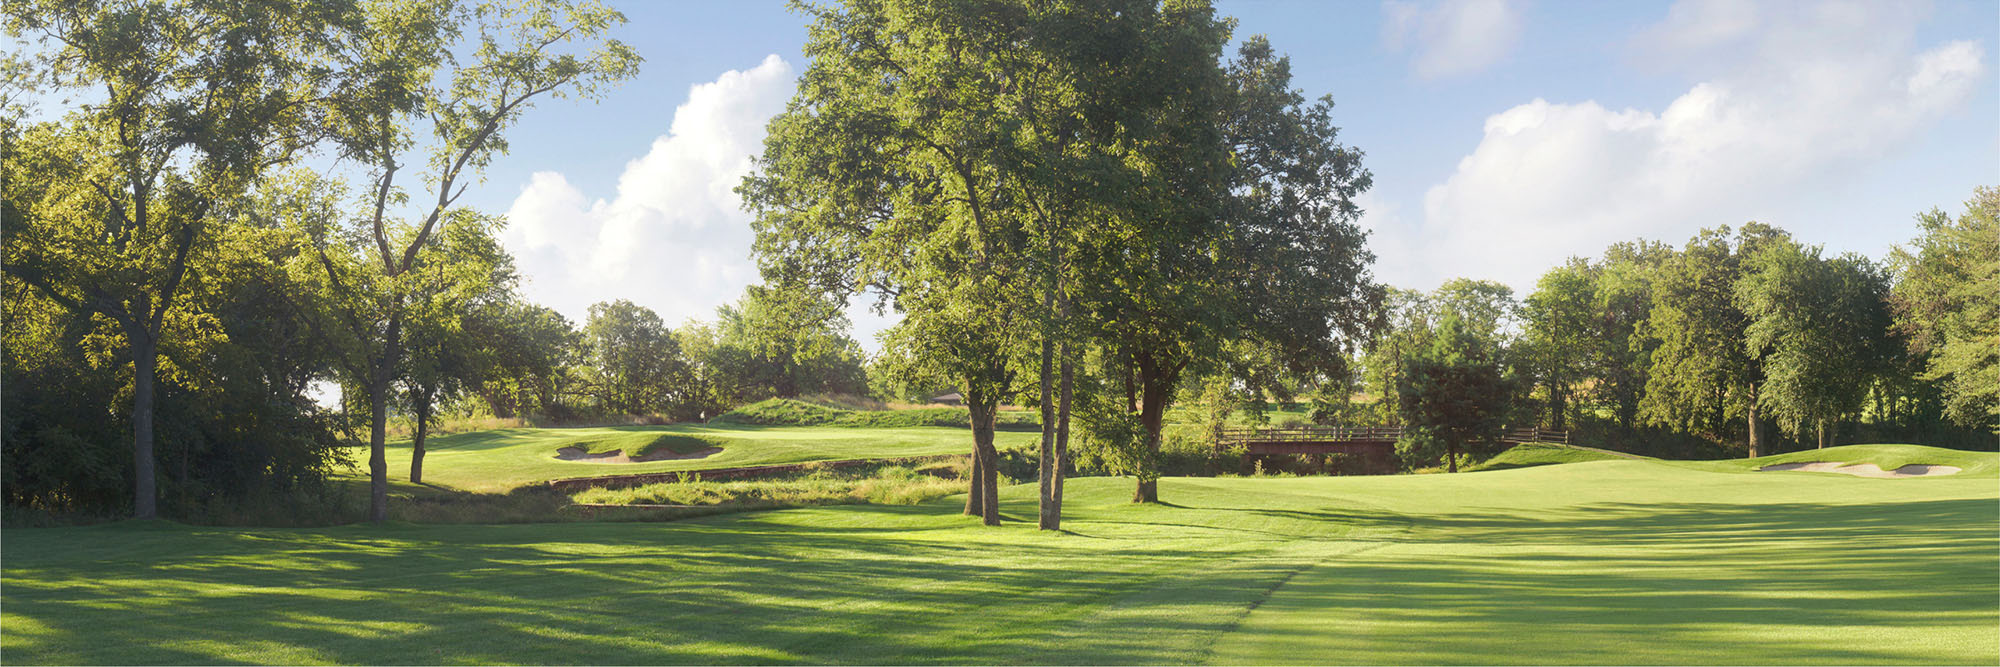 Golf Course Image - Wolf Creek No. 7